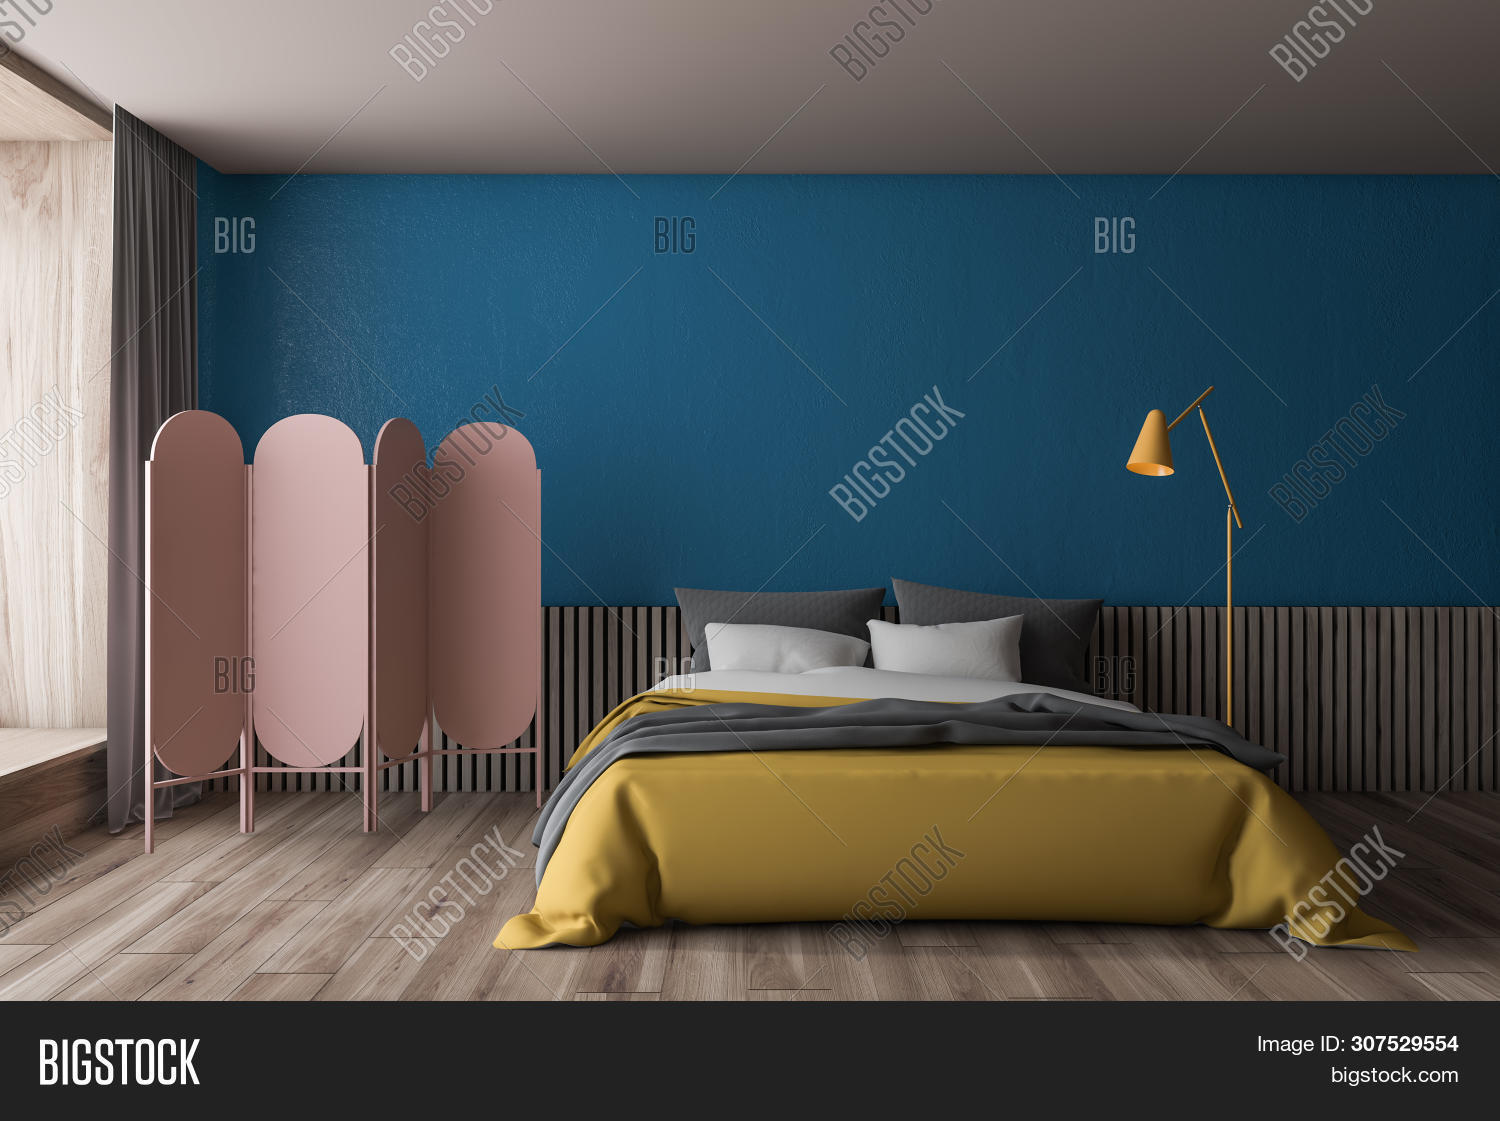 Blue Wooden Bedroom Image Photo Free Trial Bigstock